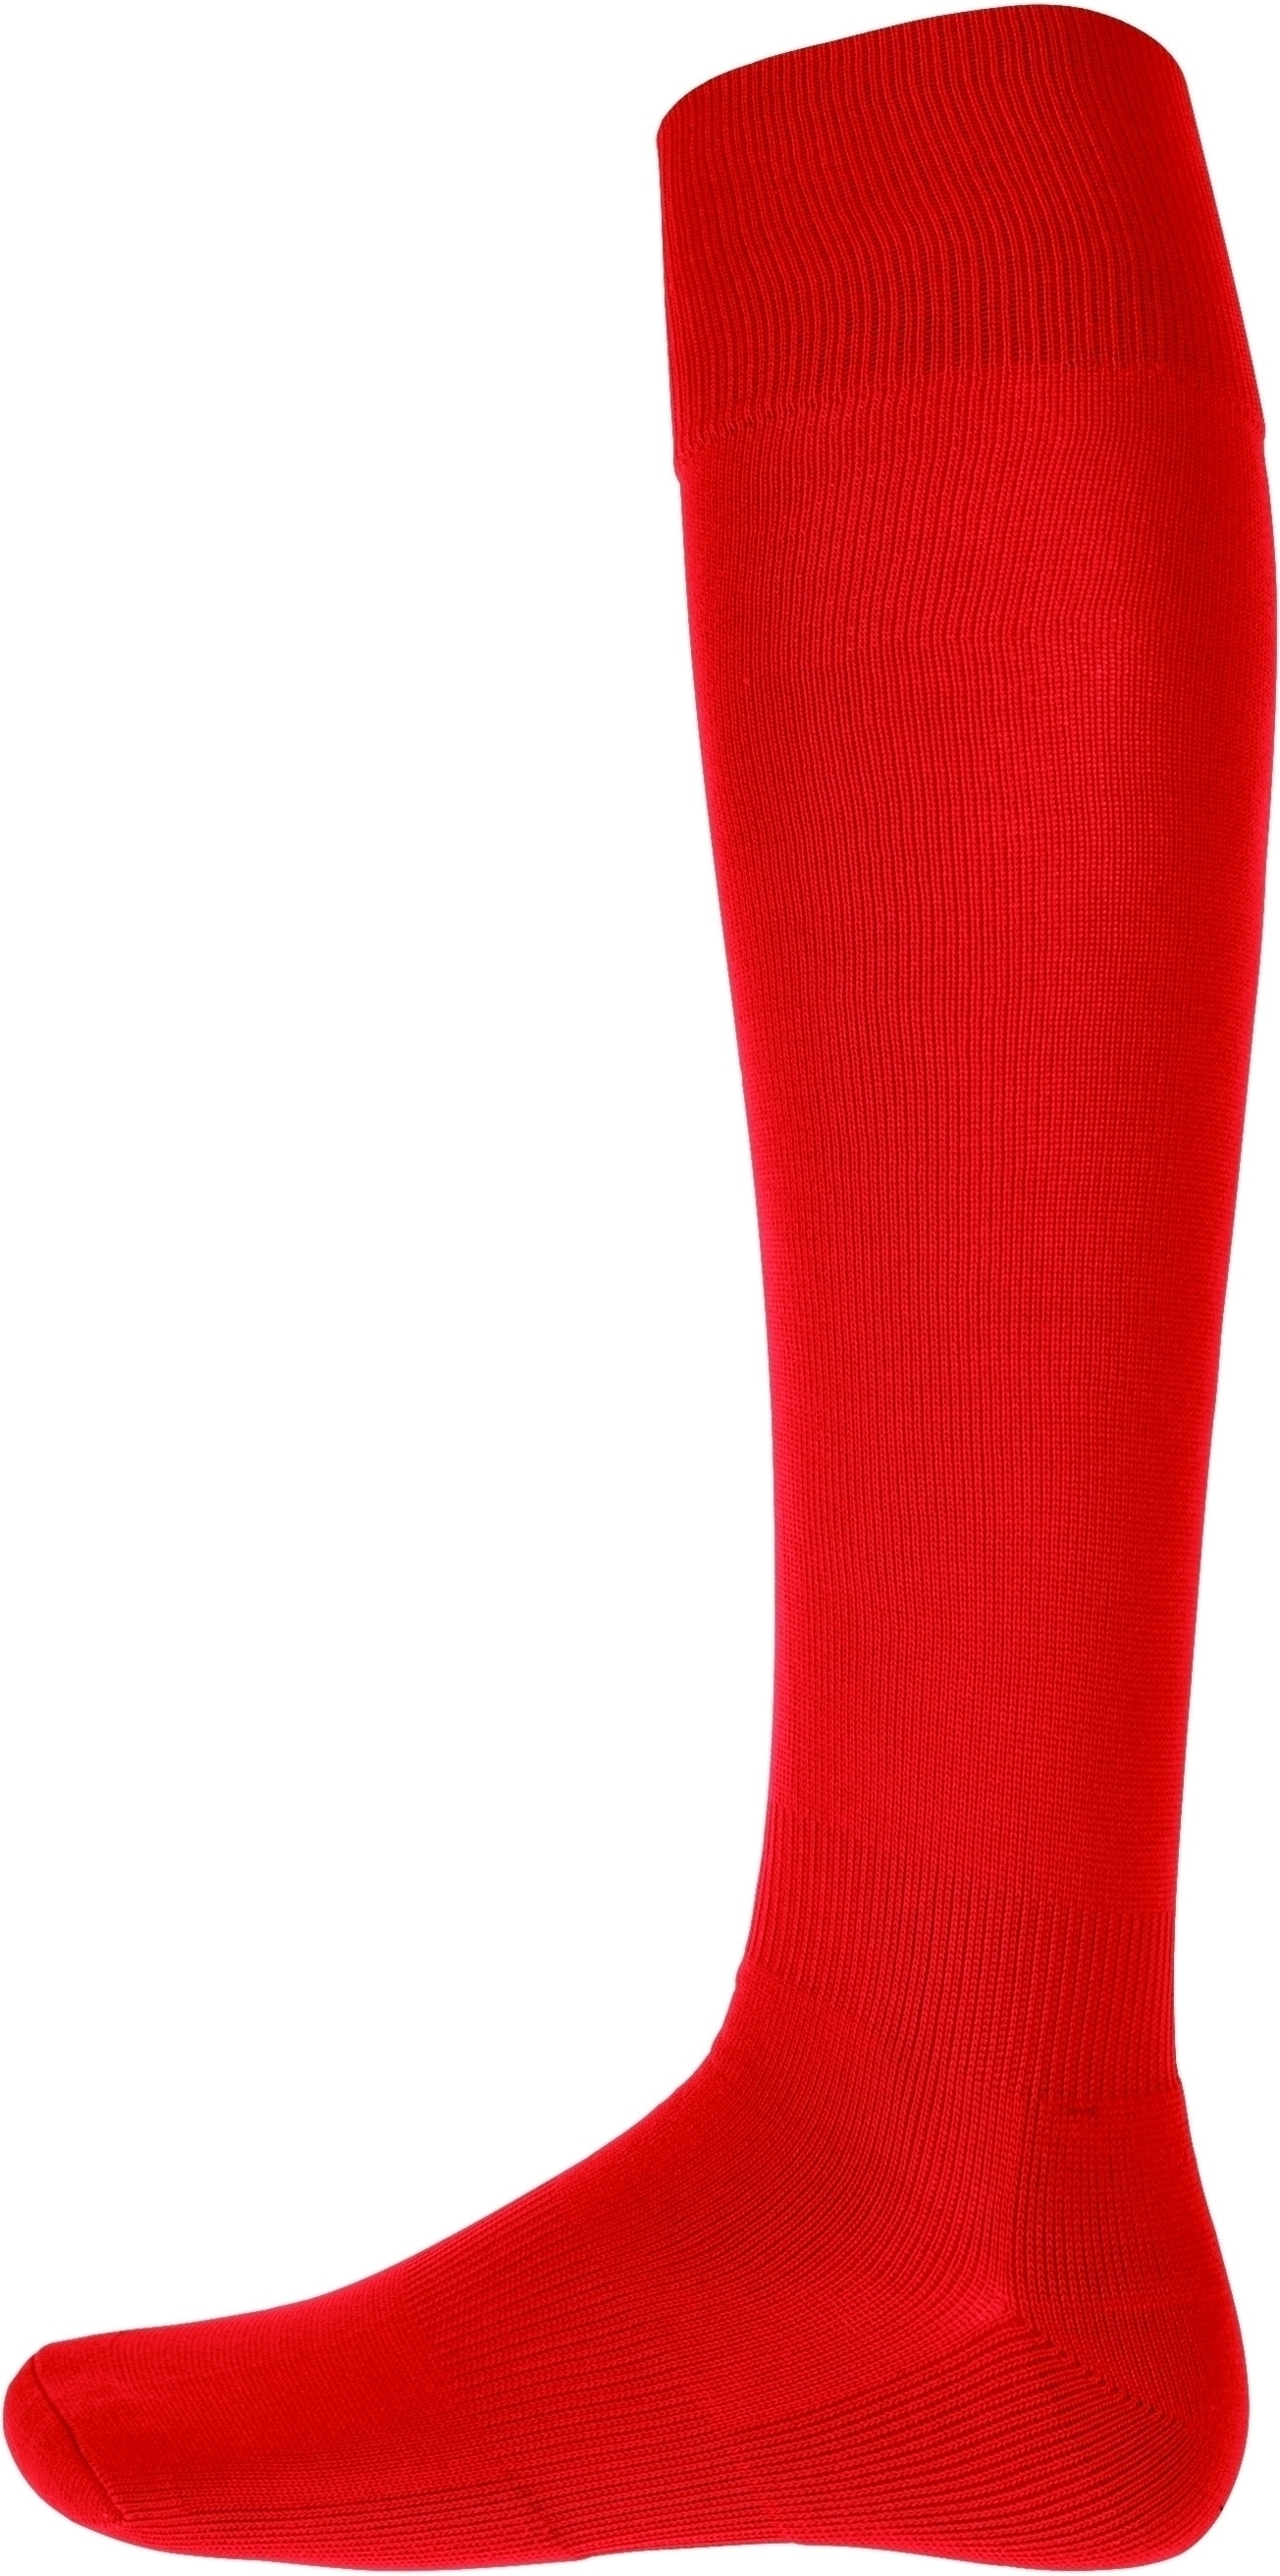 CHAUSSETTES DE SPORT Sporty Red Rouge